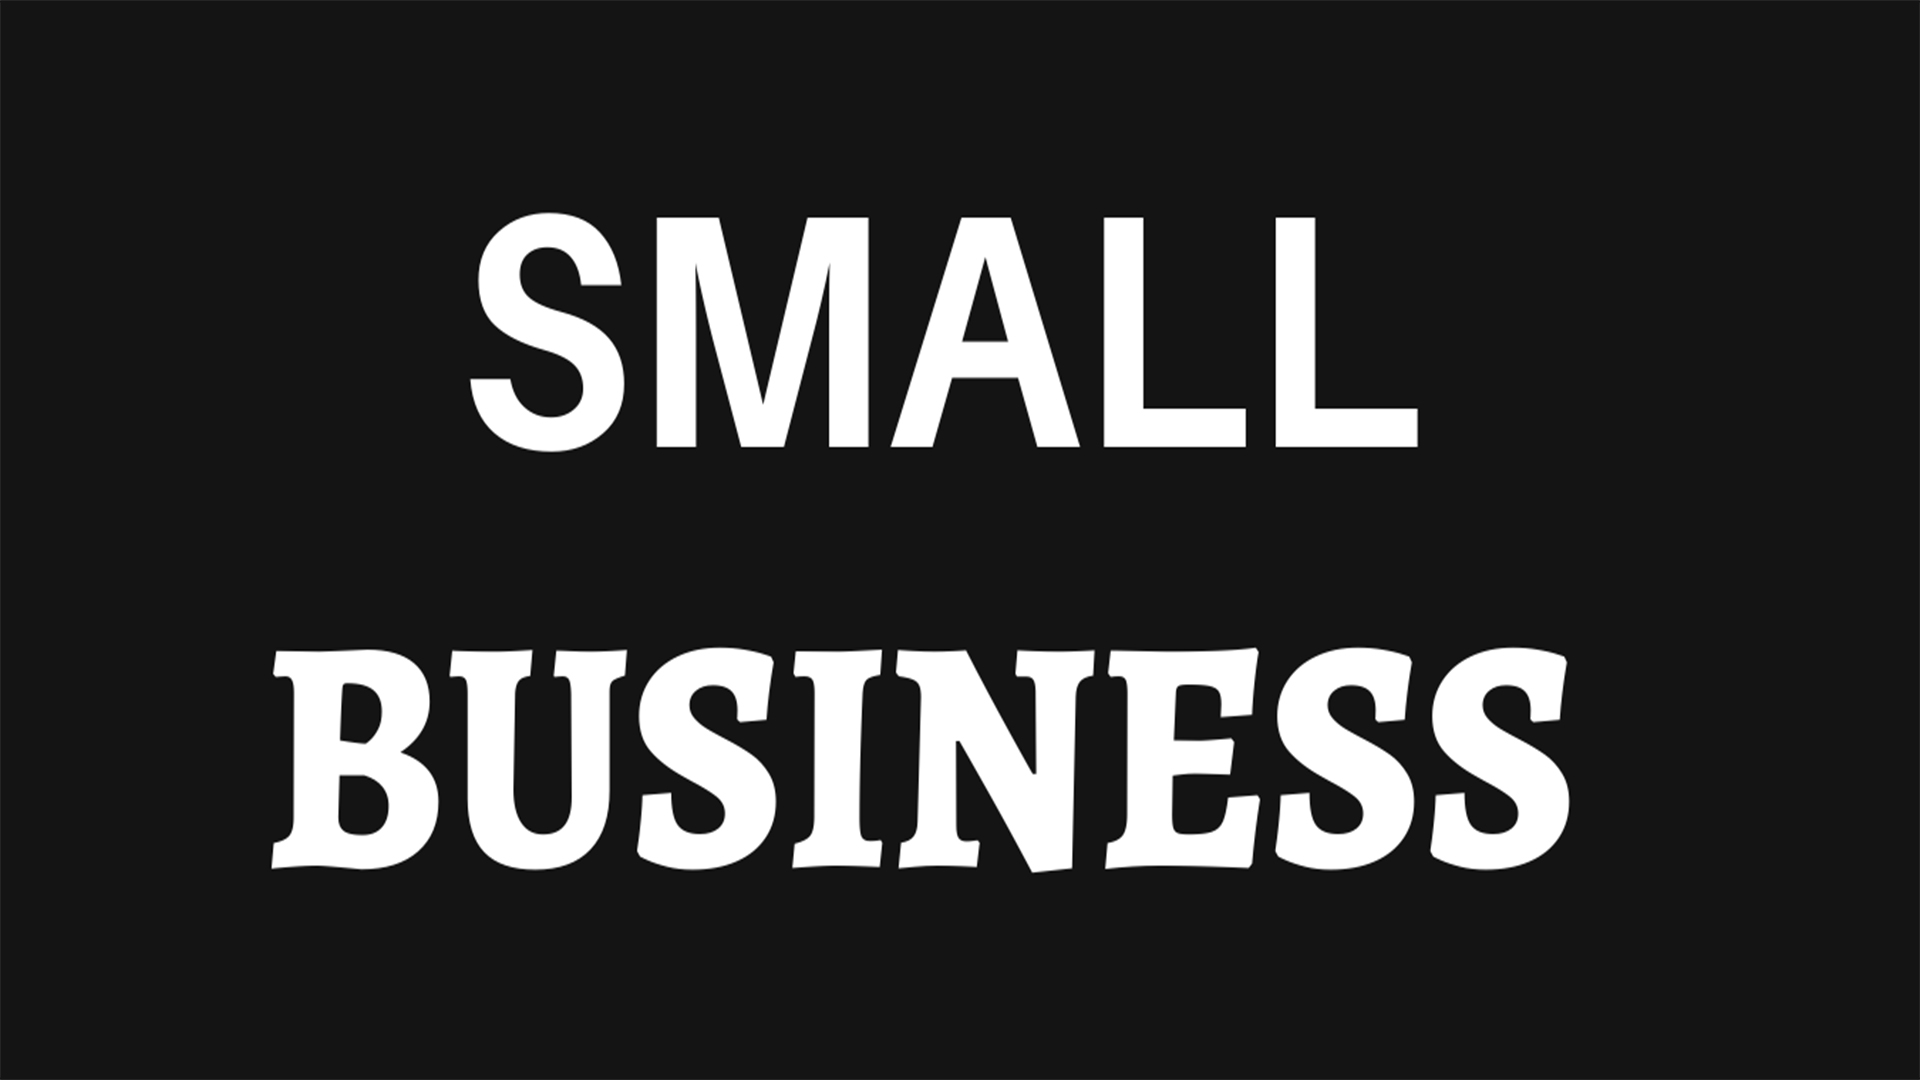 Start your small business